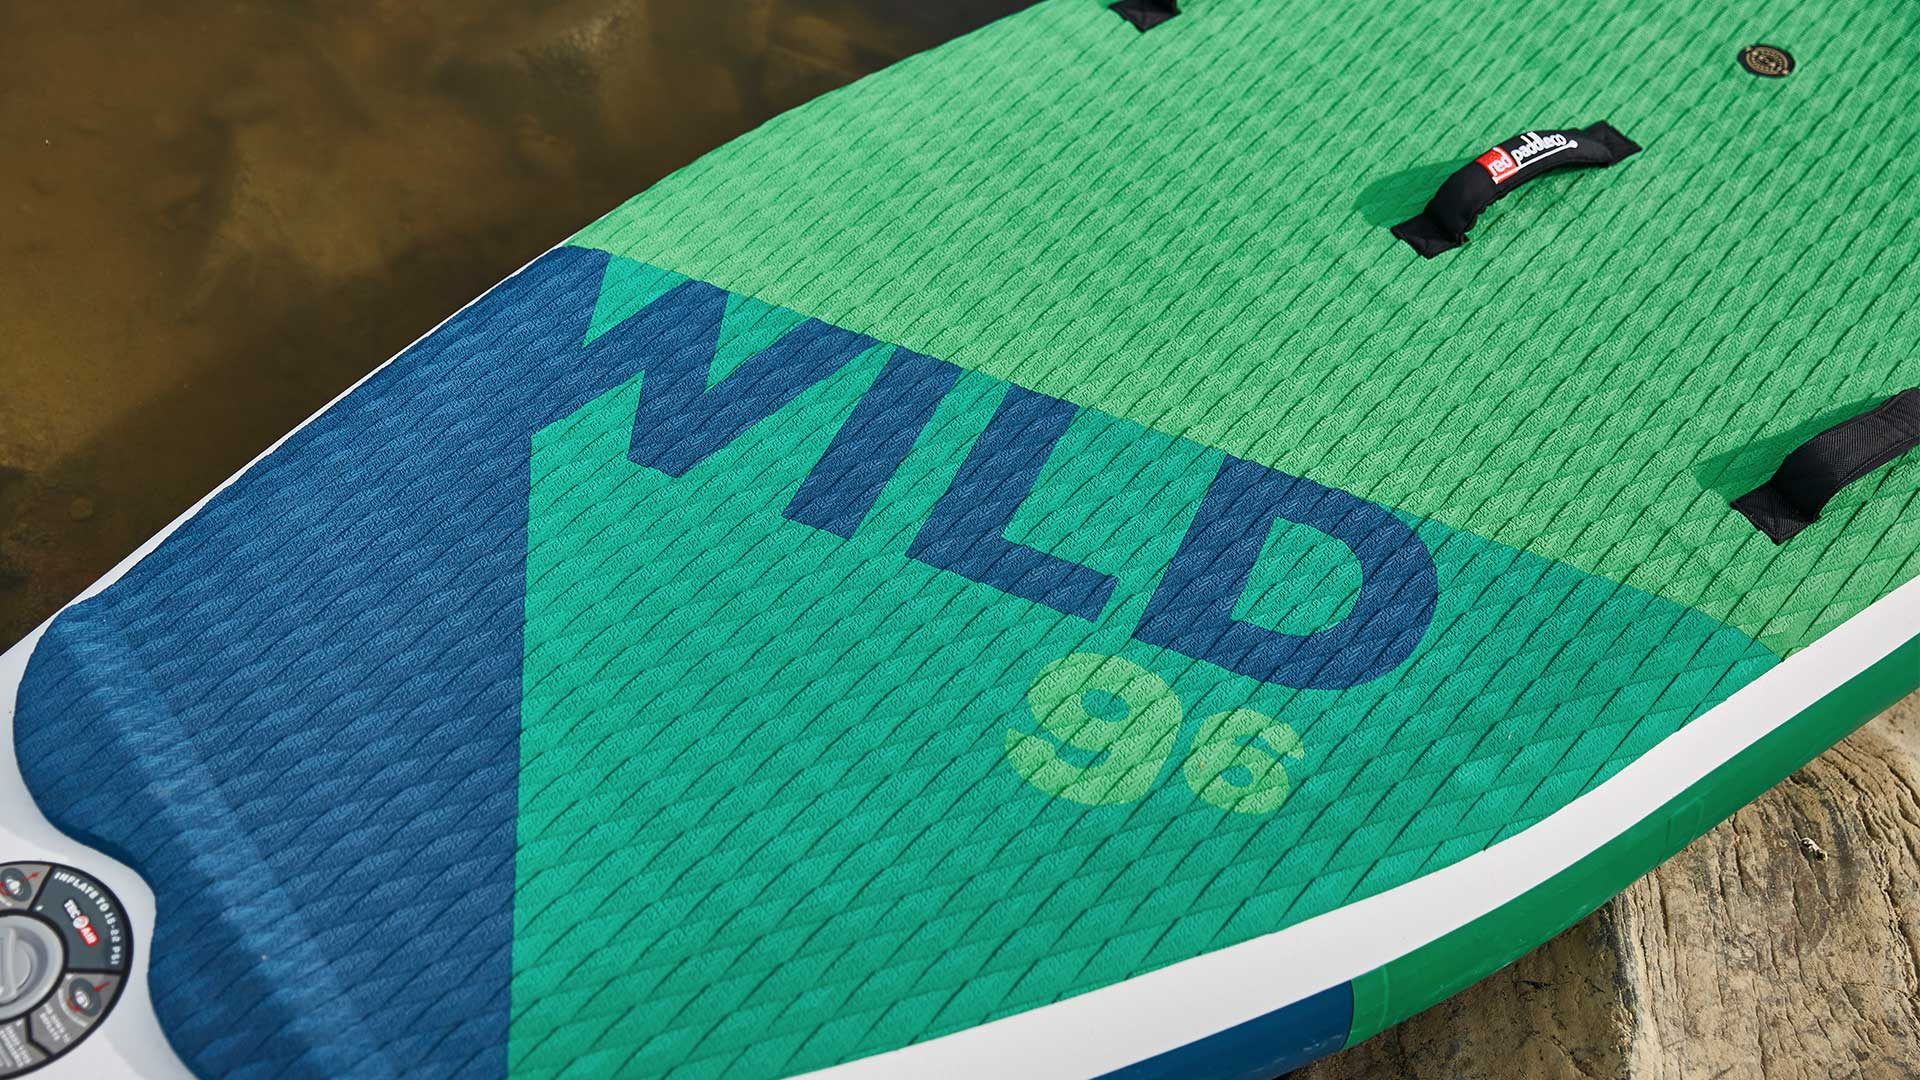 redpaddleco-96-wild-msl-inflatable-paddle-board-desktop-gallery-deckpad